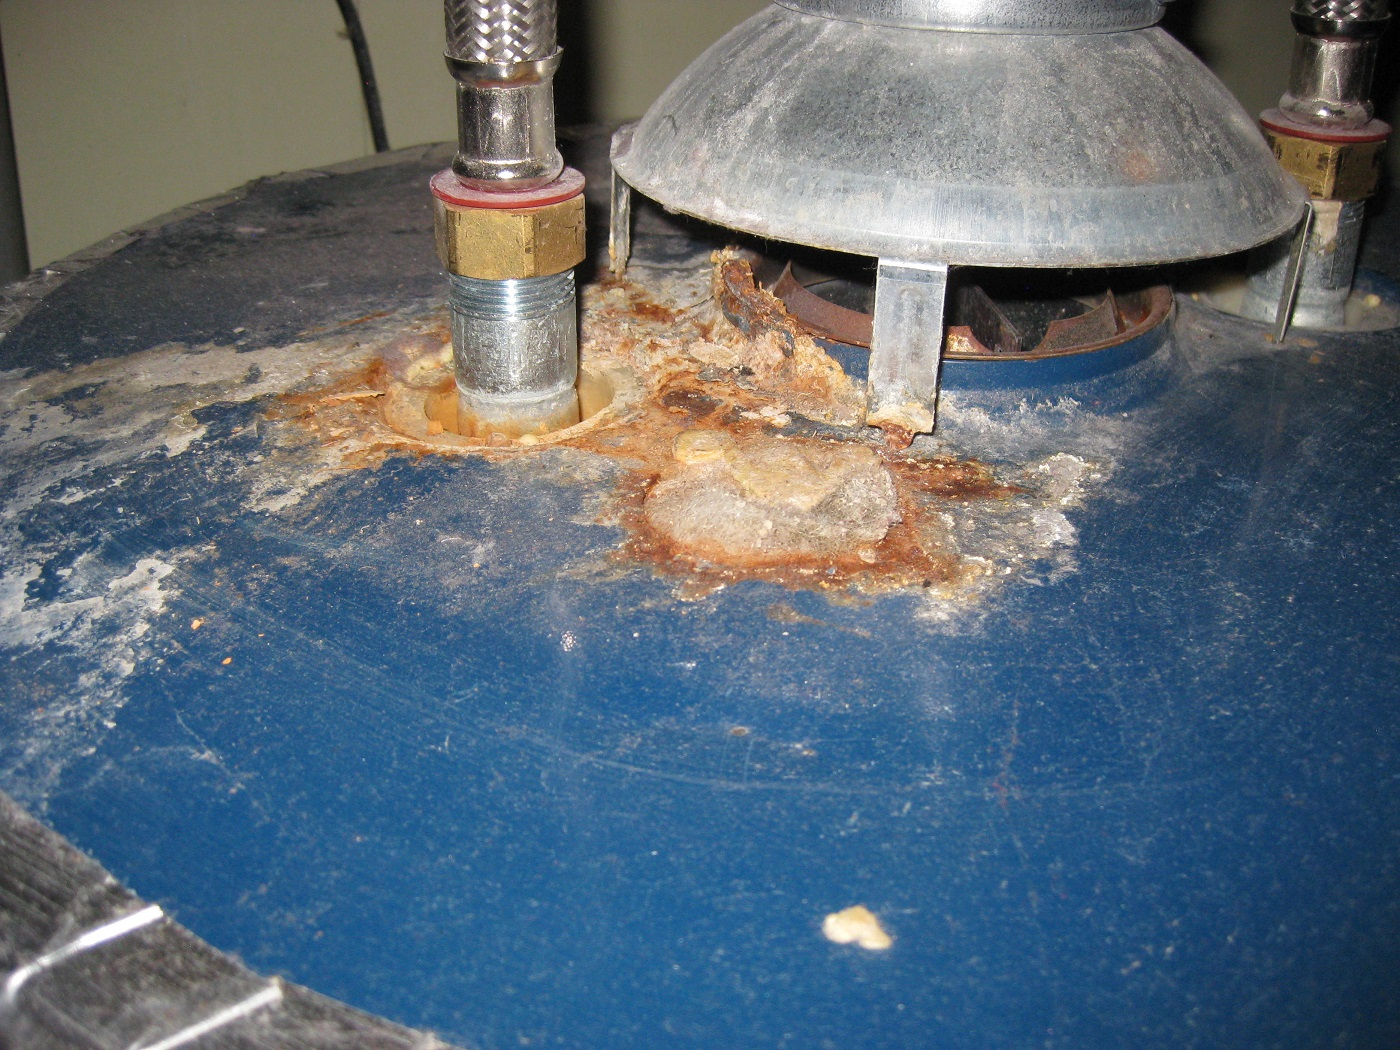 A very clear sign of spillage. Call an HVAC professional if you see this.